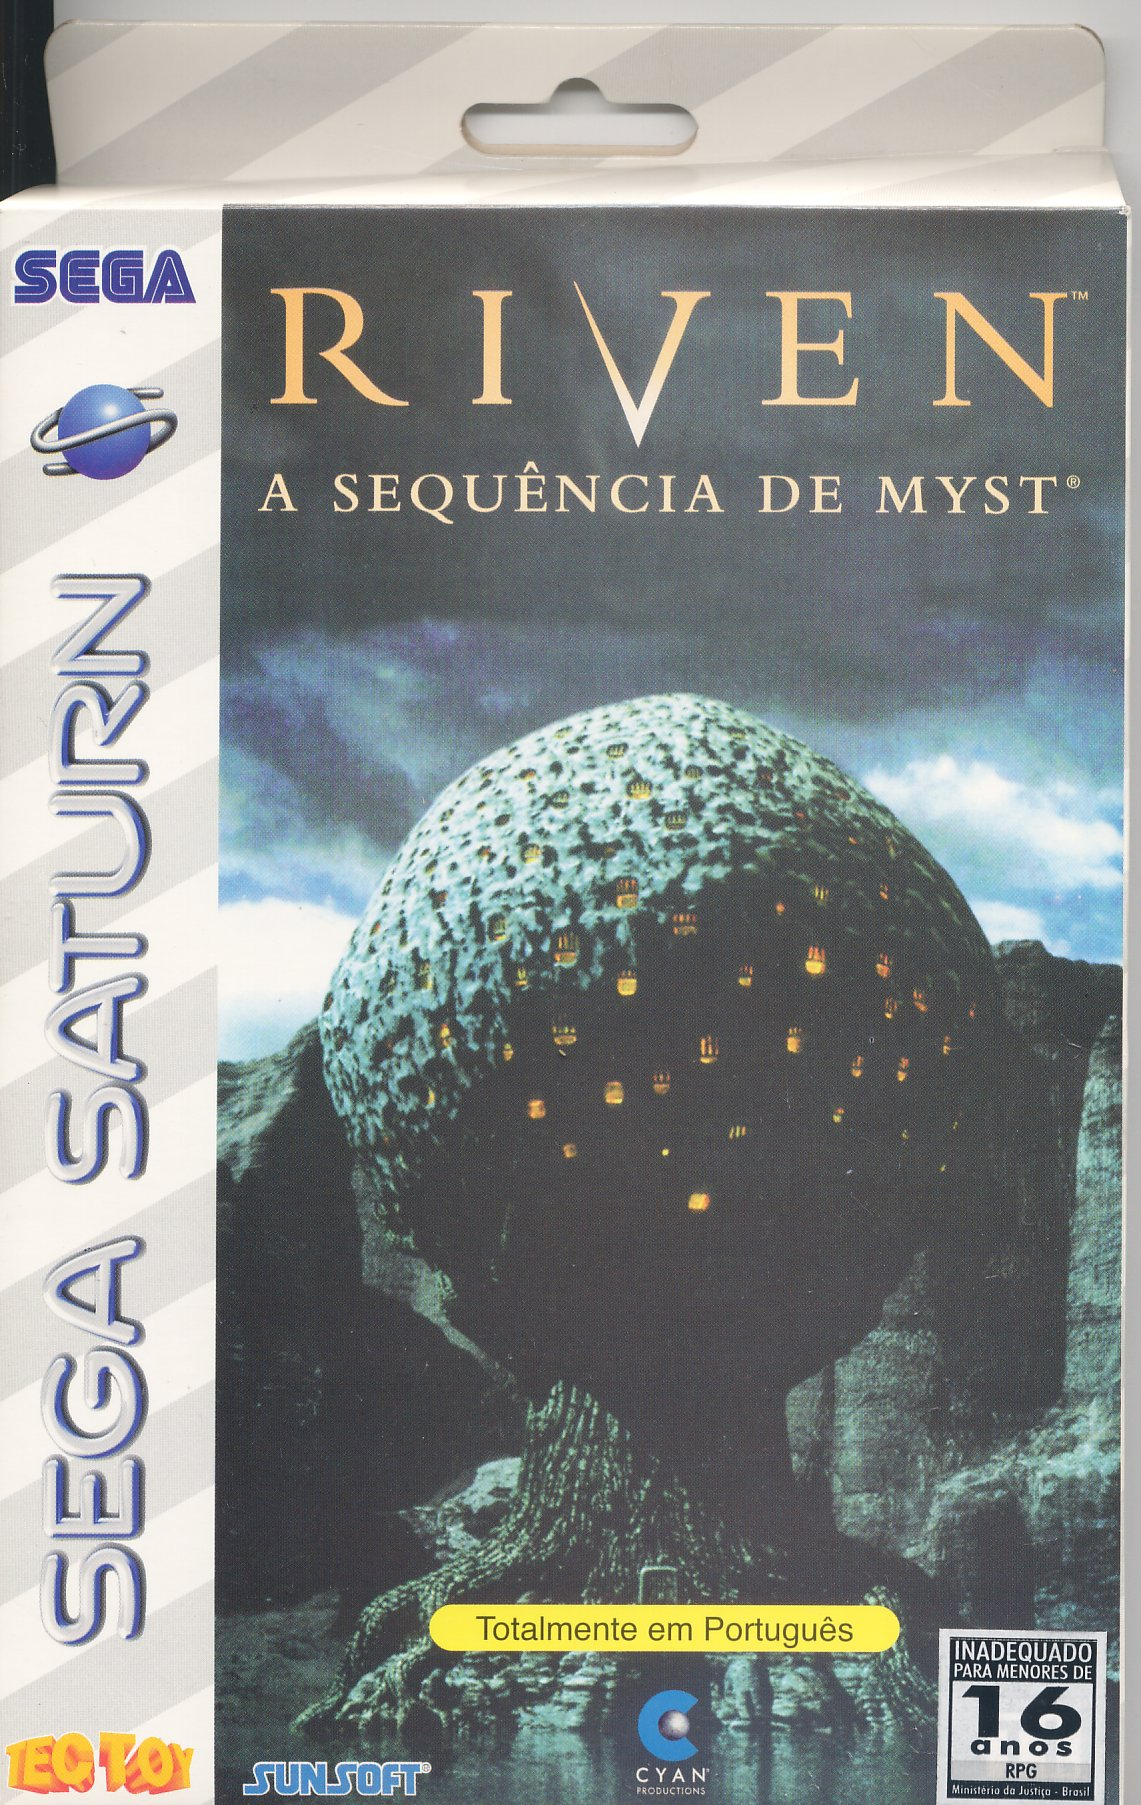 Sega Saturn R Riven The Sequel To Myst B Game Covers Box